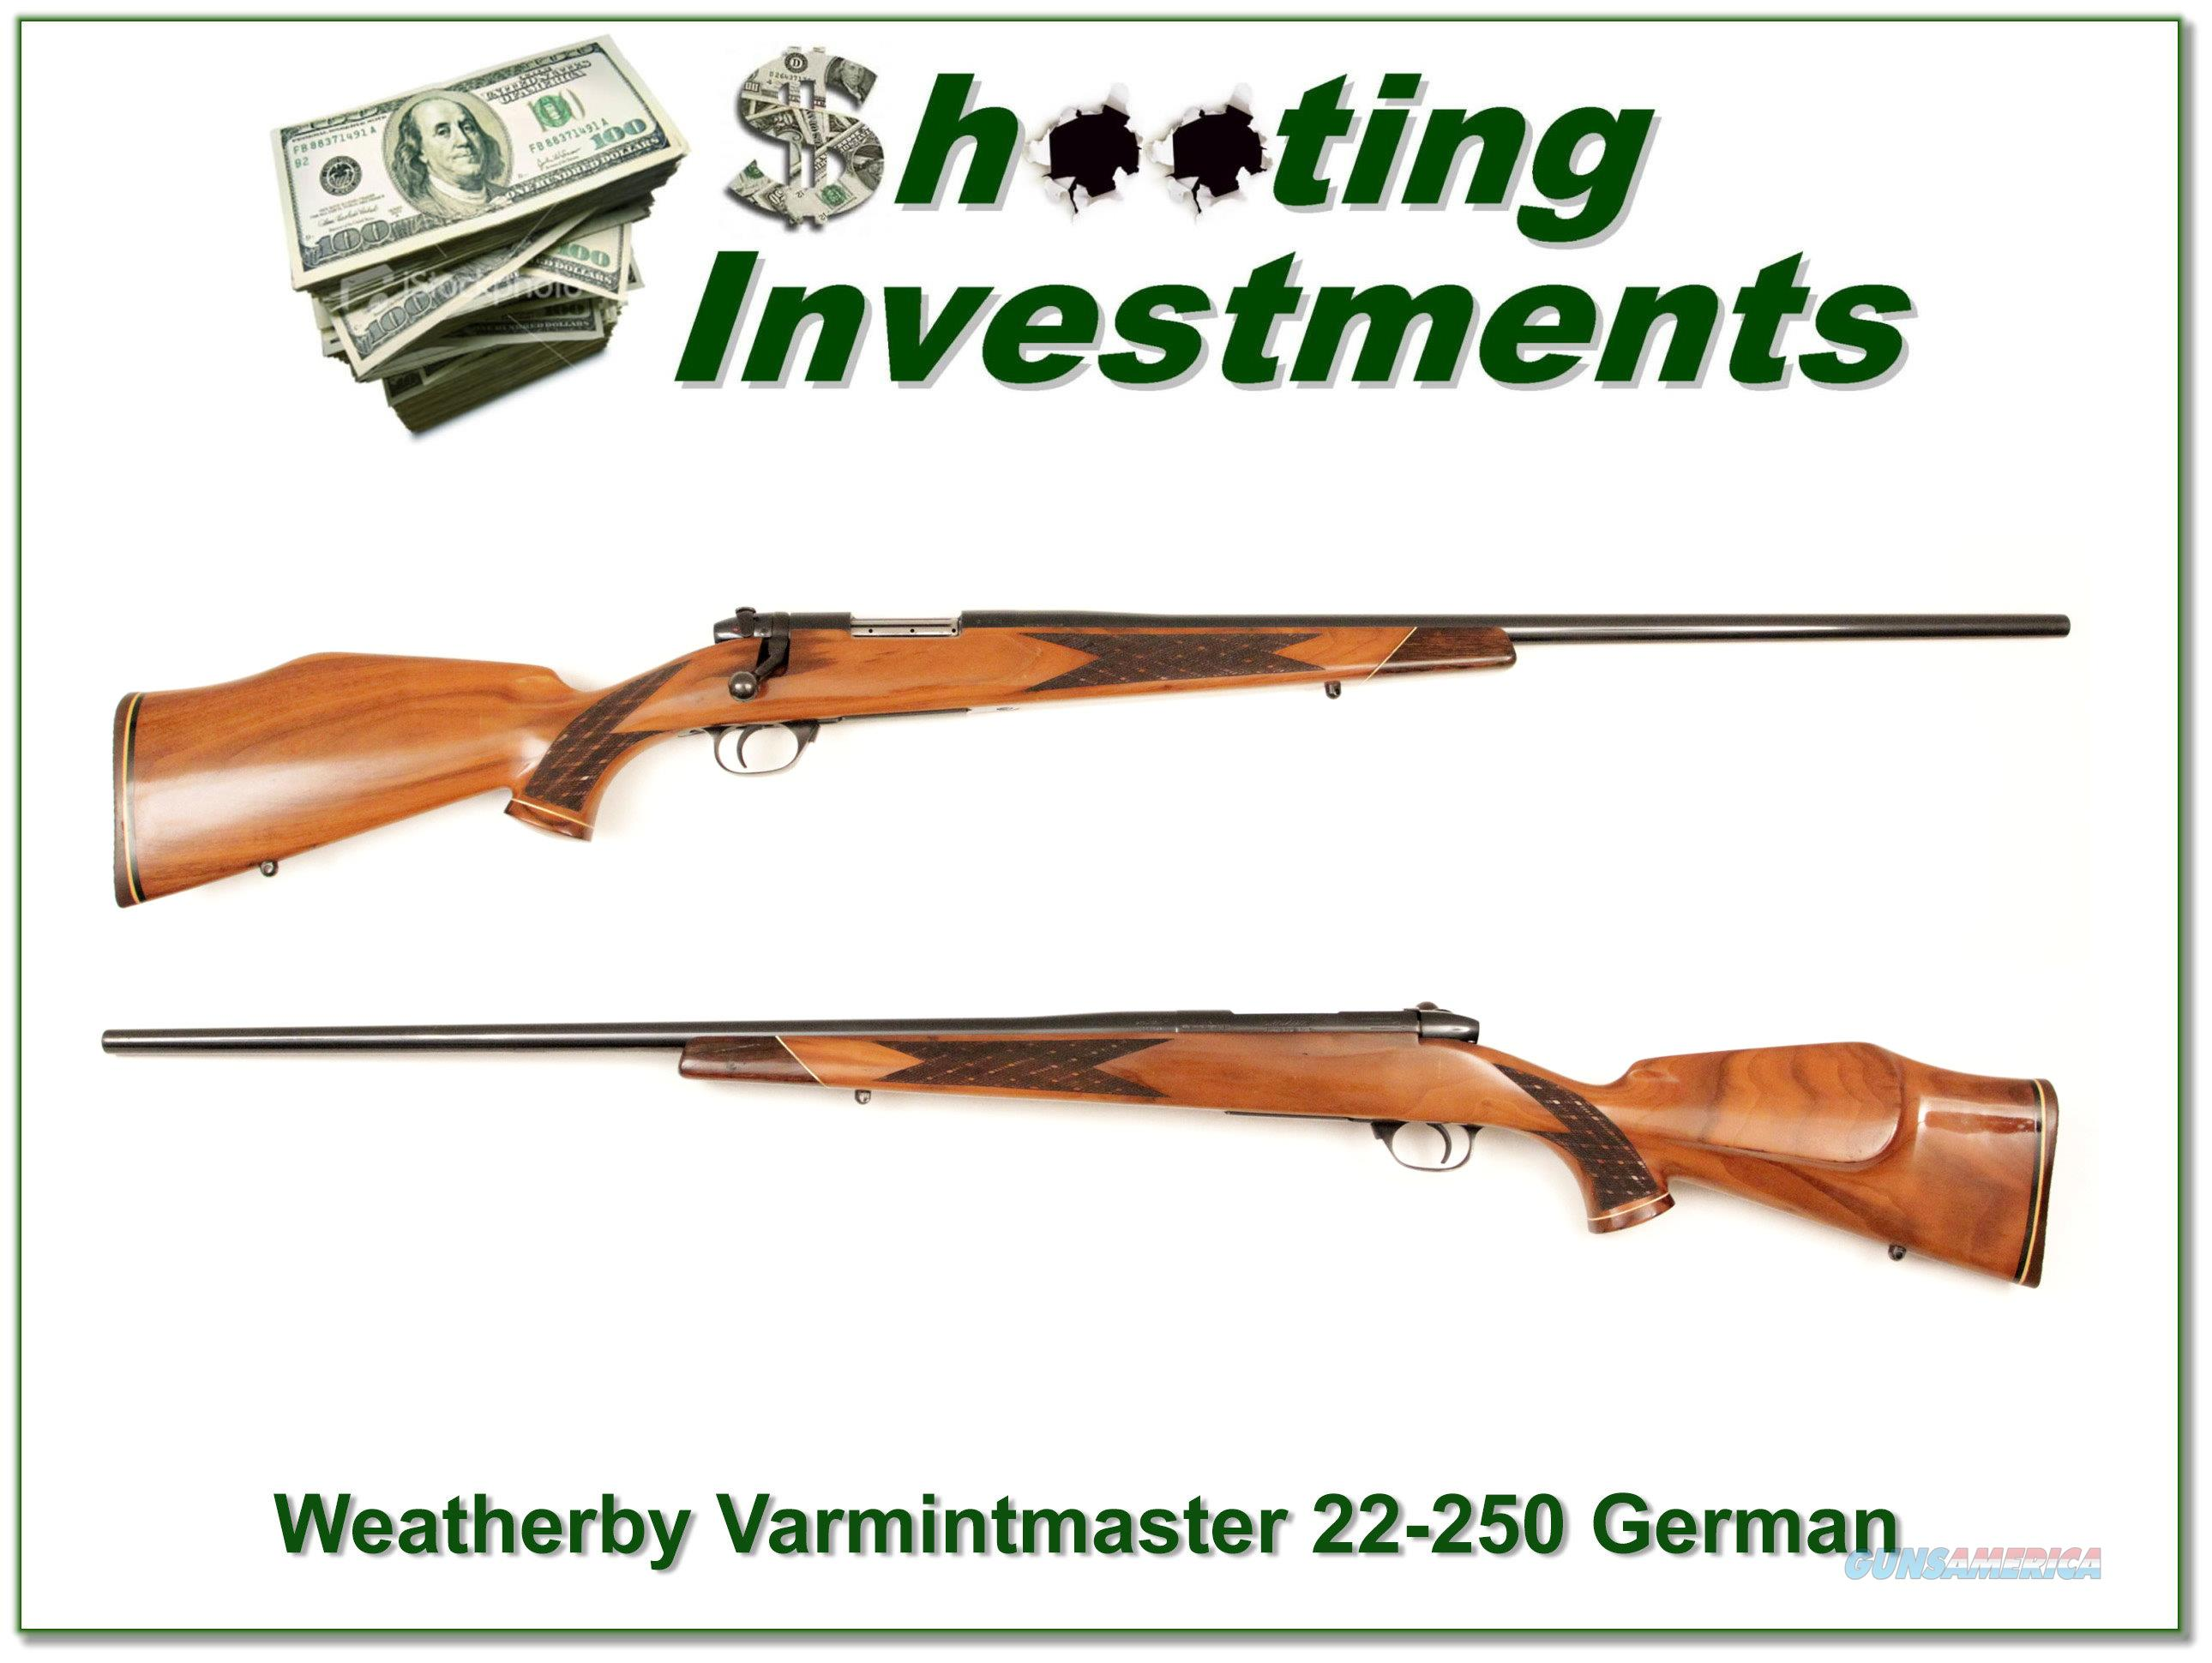 Weatherby Mark V Varmintmaster German 26in 22-250  Guns > Rifles > Weatherby Rifles > Sporting